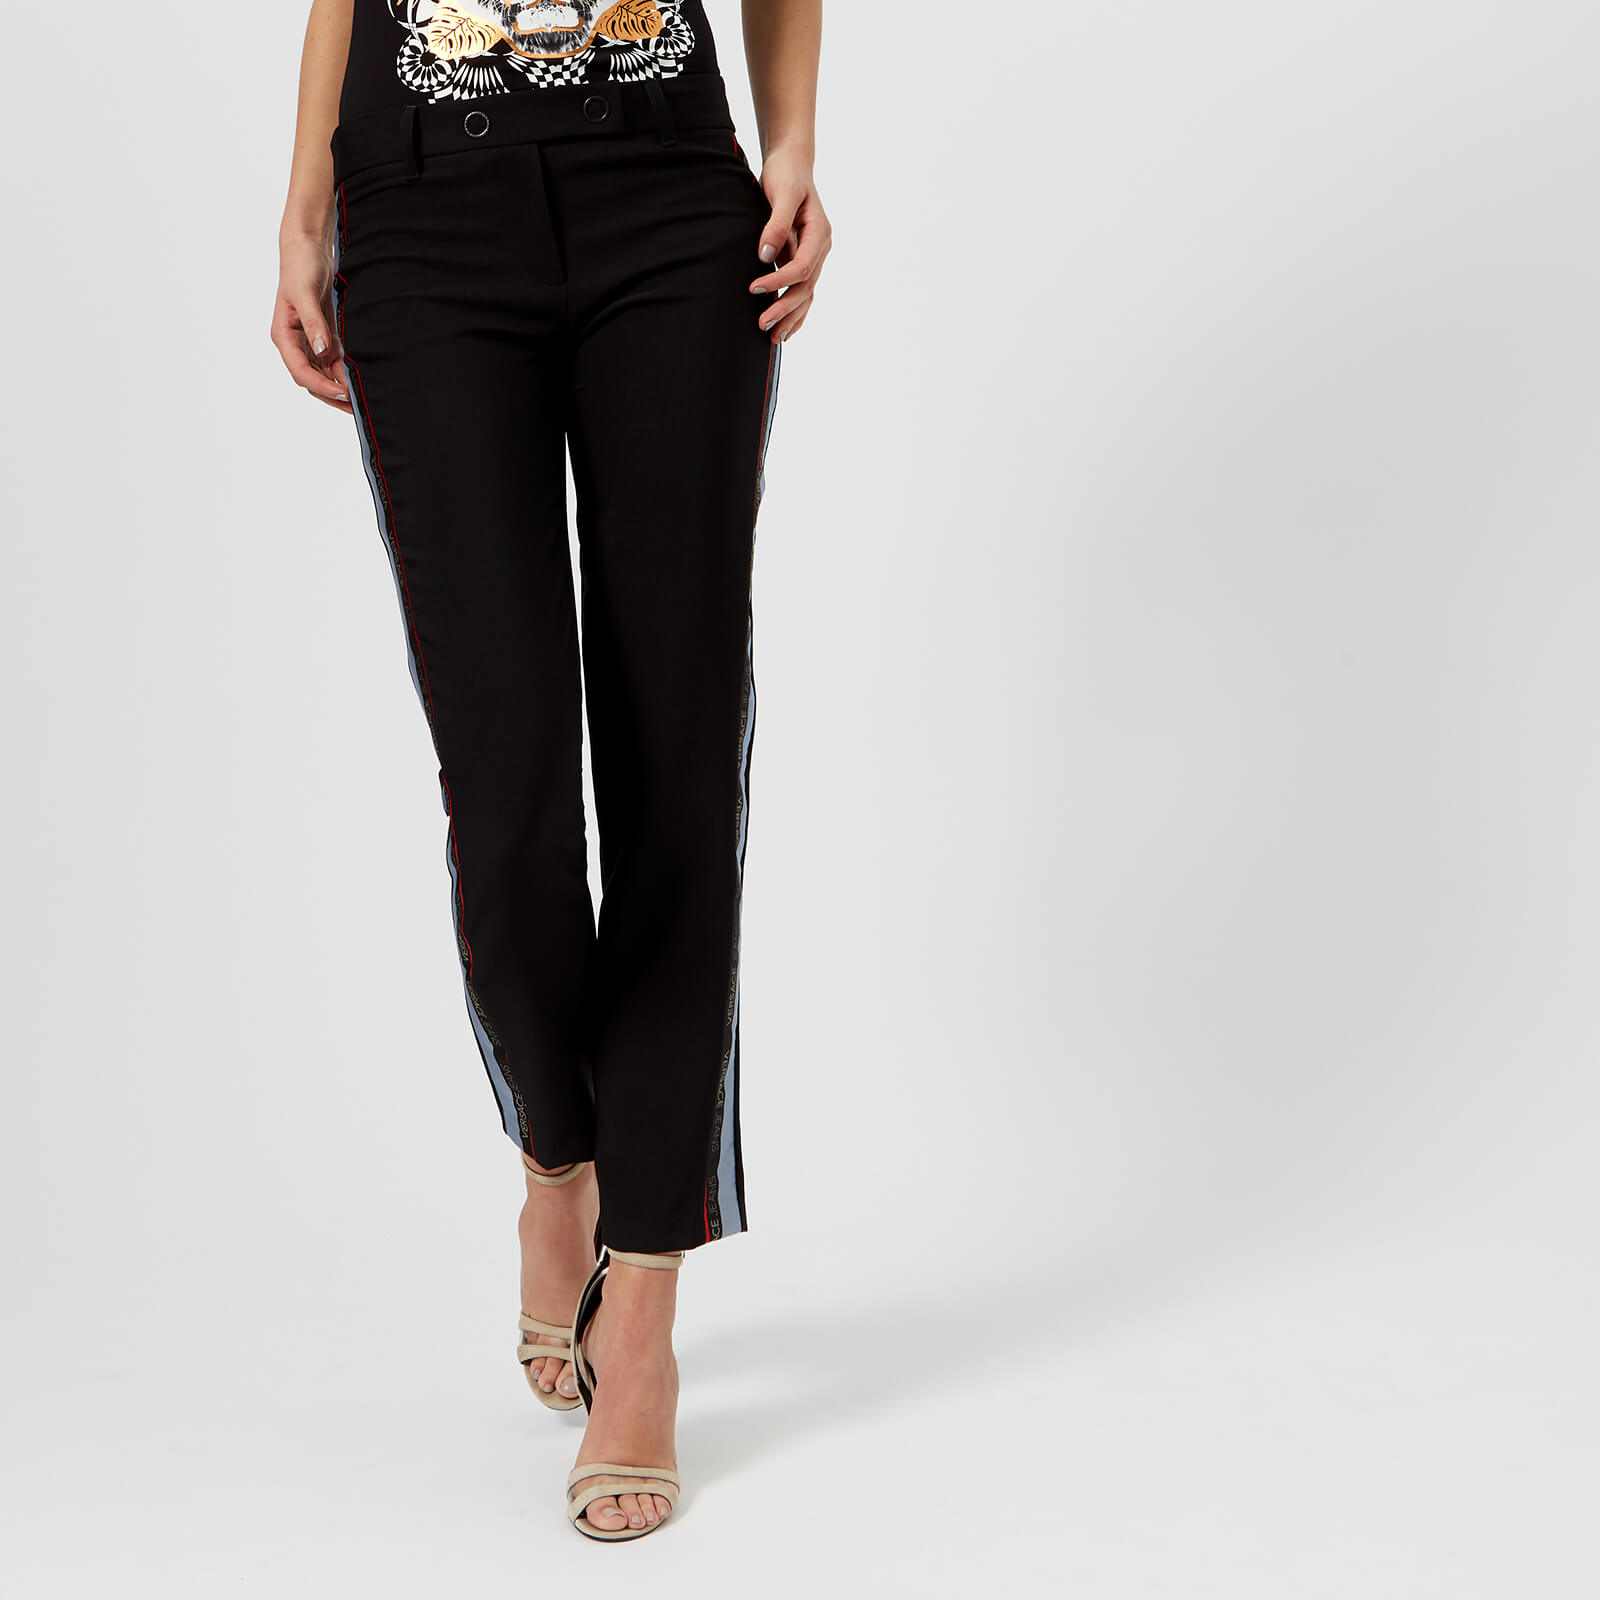 5df61bc9df9a Versace Jeans Women's Stripe Trousers - Black Womens Clothing | TheHut.com